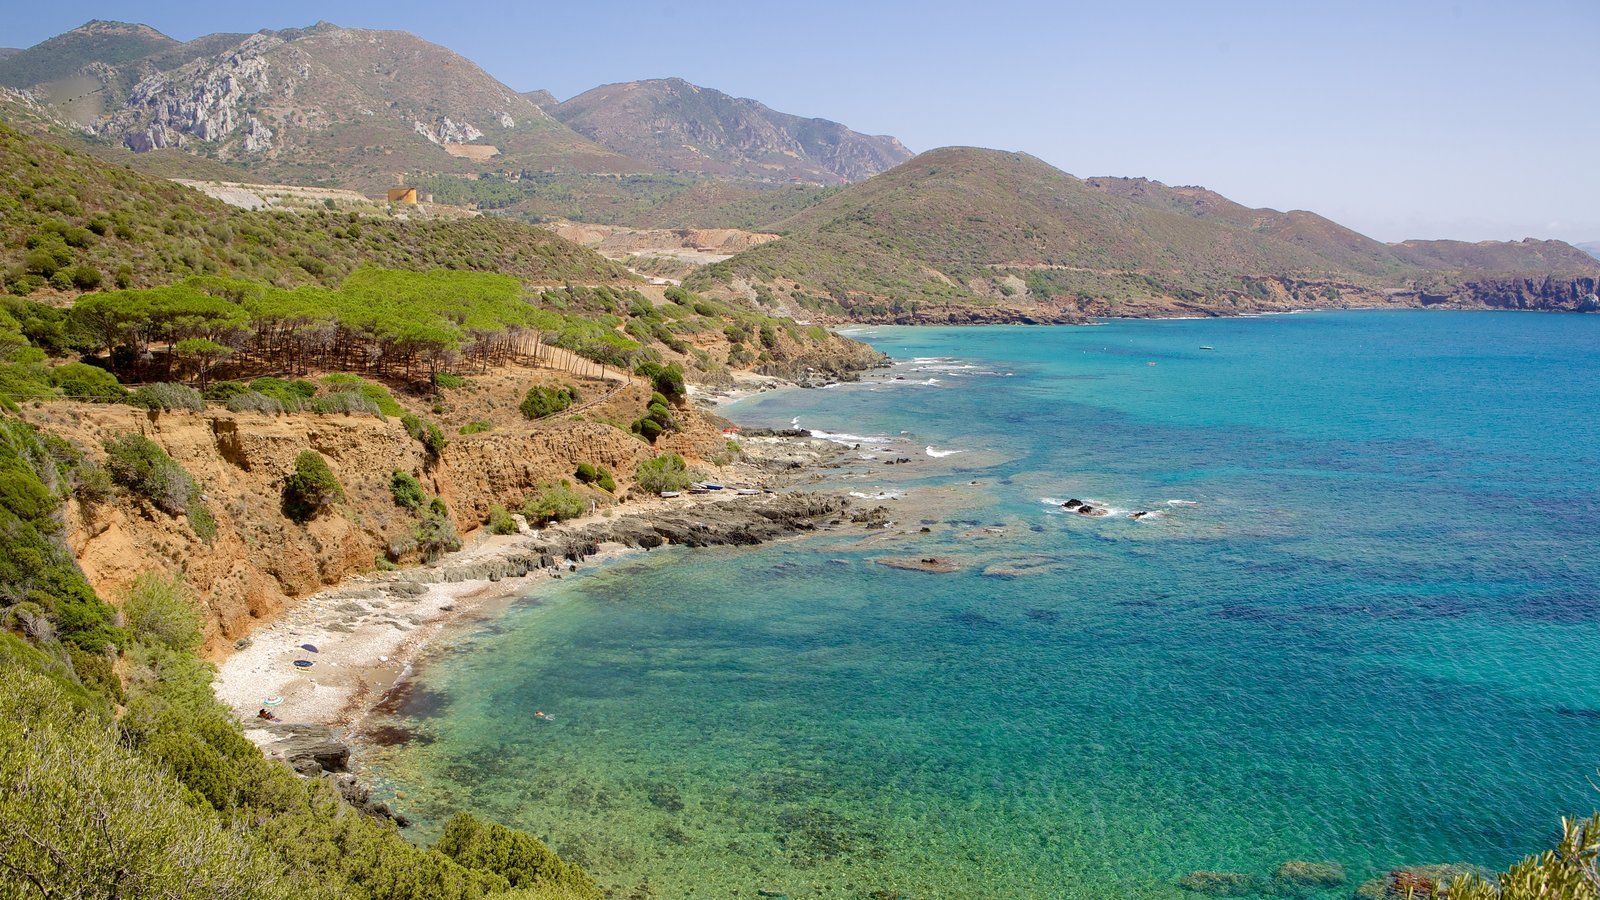 Porto Flavia featuring rugged coastline